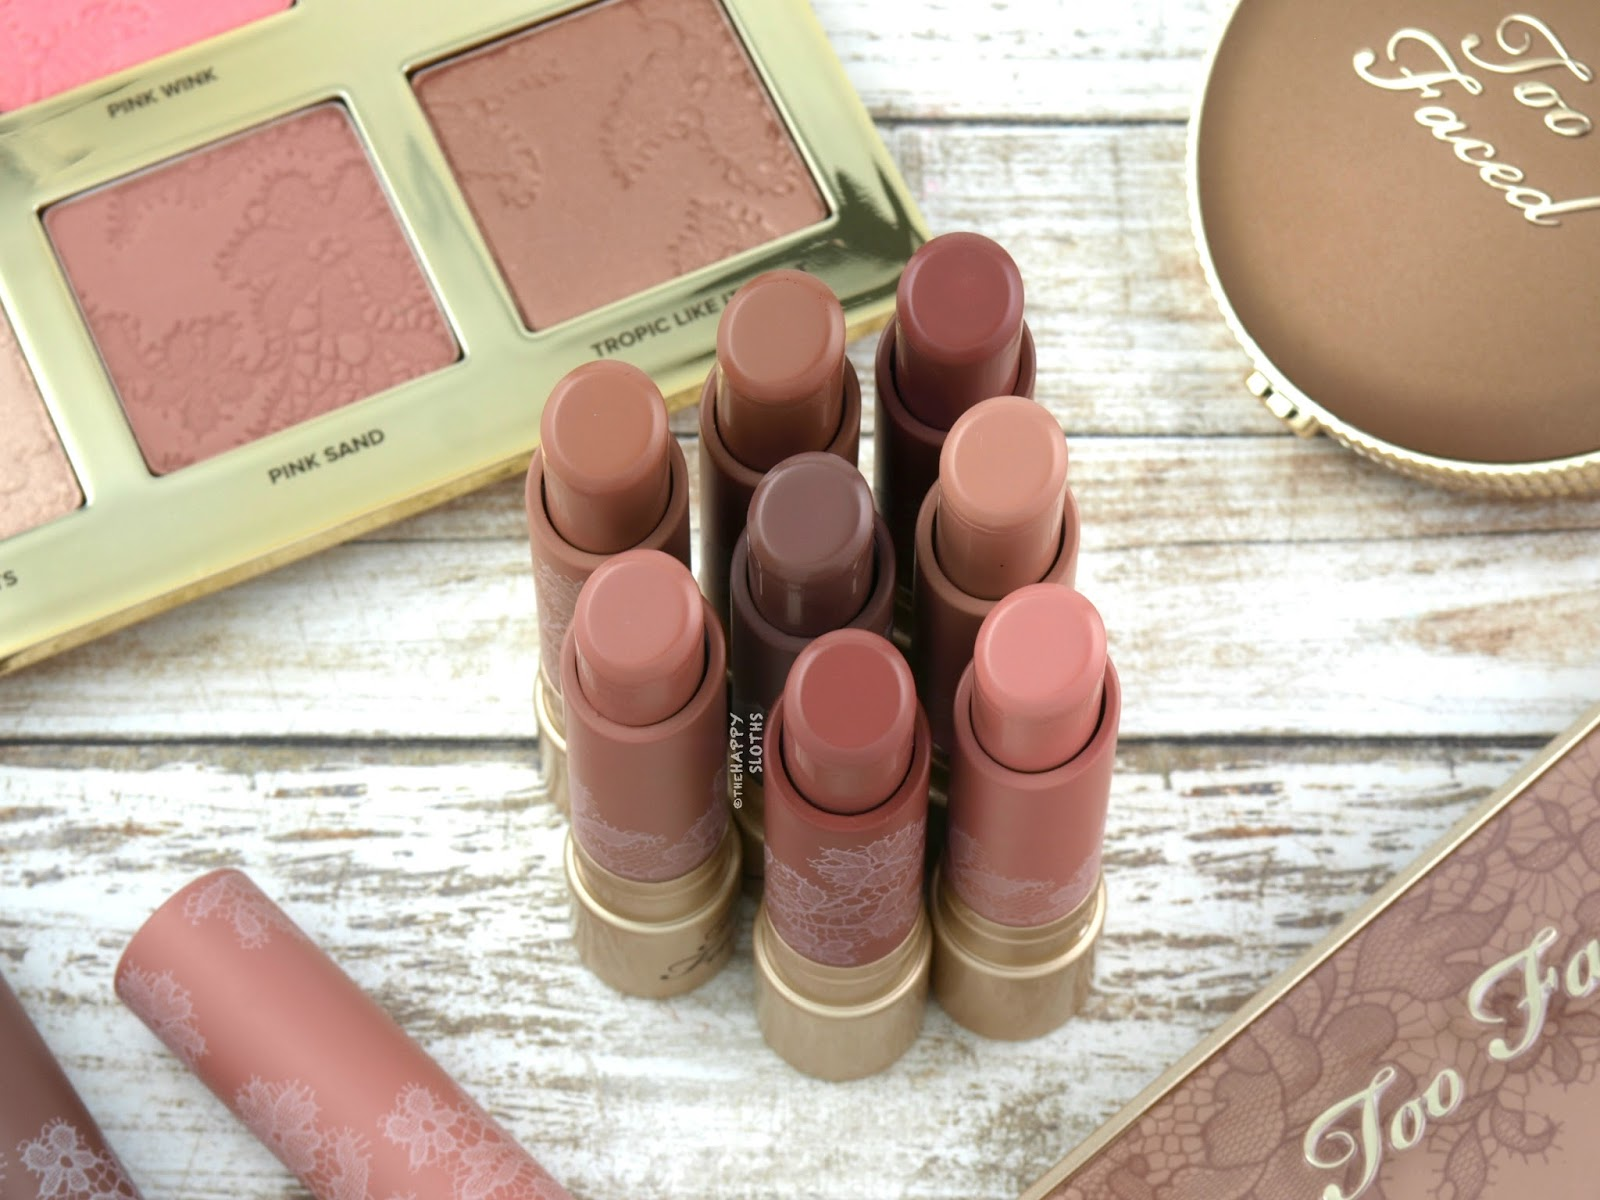 Too Faced | Natural Nudes Intense Color Coconut Butter Lipstick: Review and Swatches